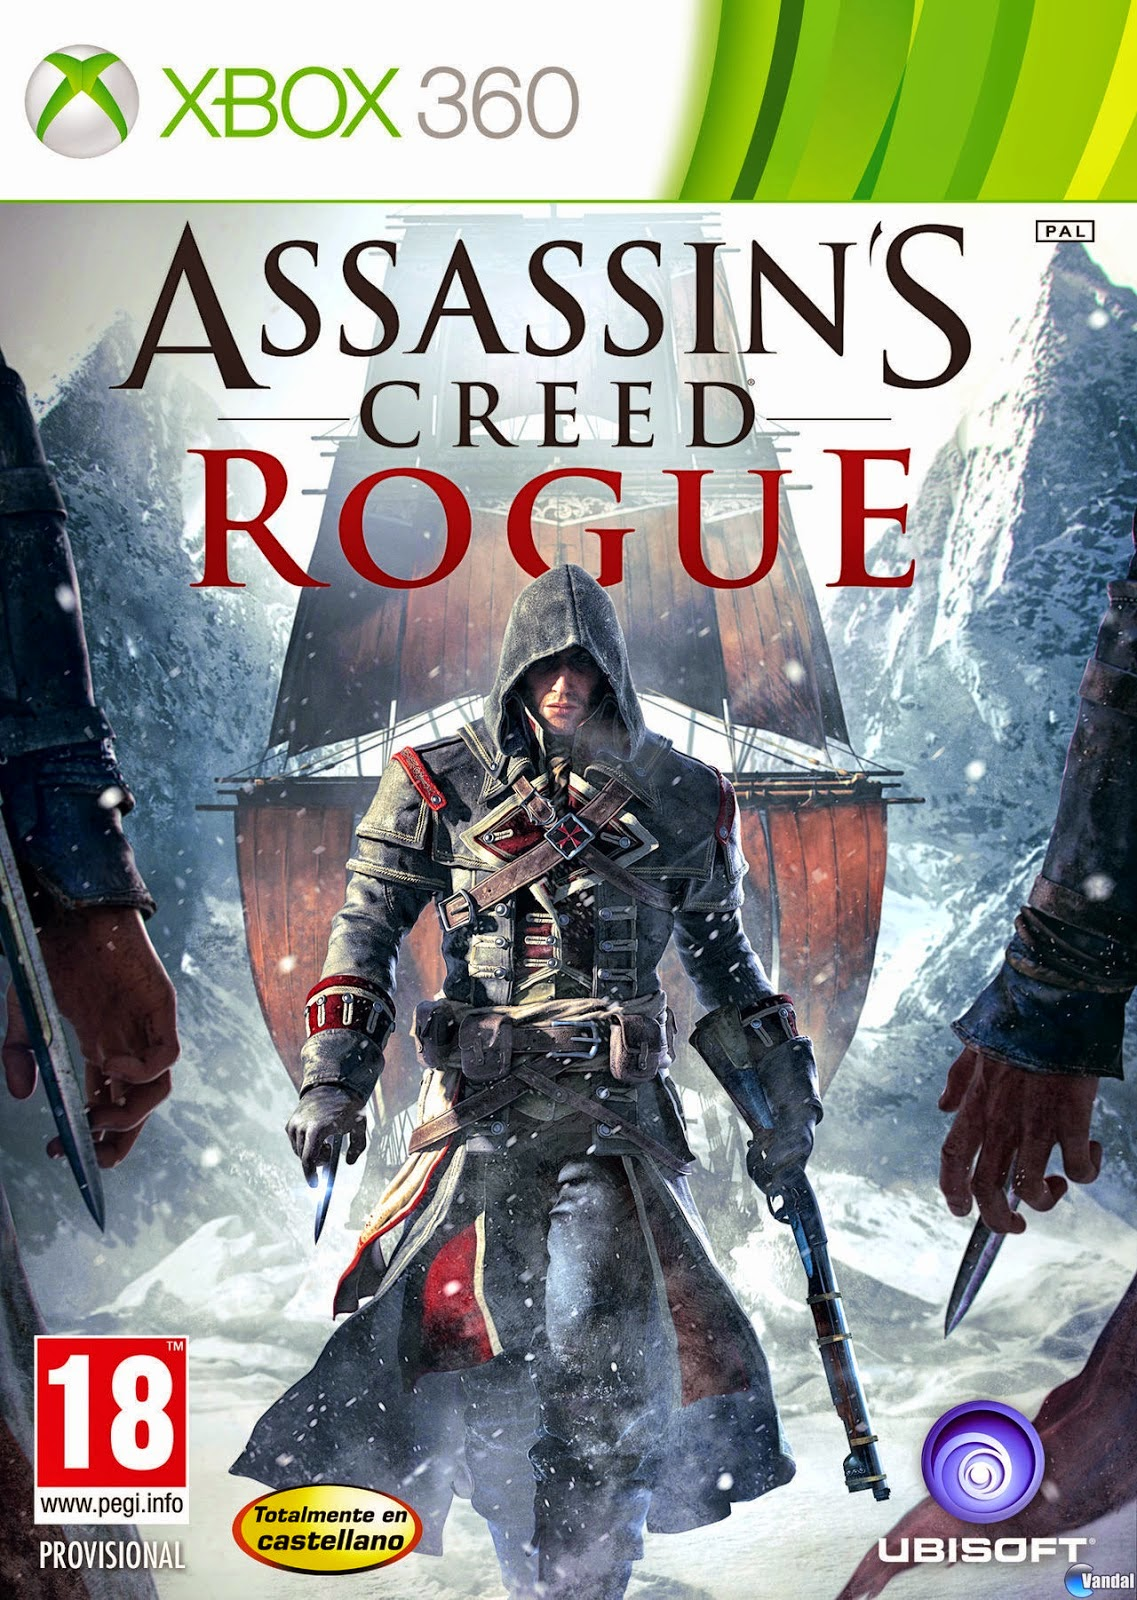 Assassin's Creed Rogue XBOX360 PS3 free download full version